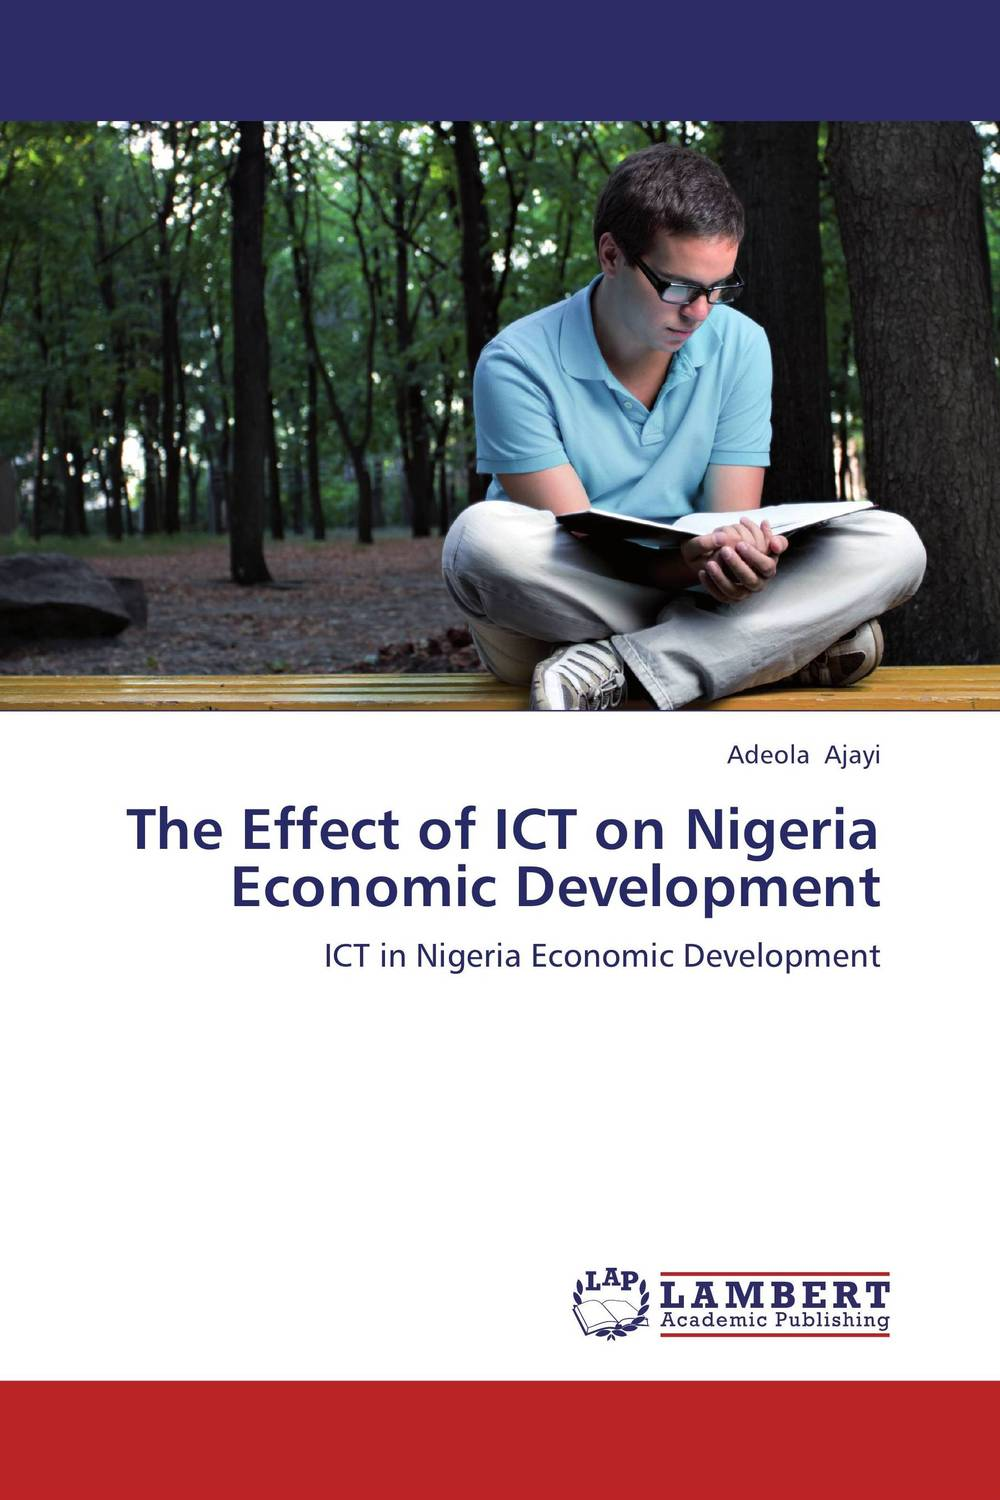 The Effect of ICT on Nigeria Economic Development tobias olweny and kenedy omondi the effect of macro economic factors on stock return volatility at nse